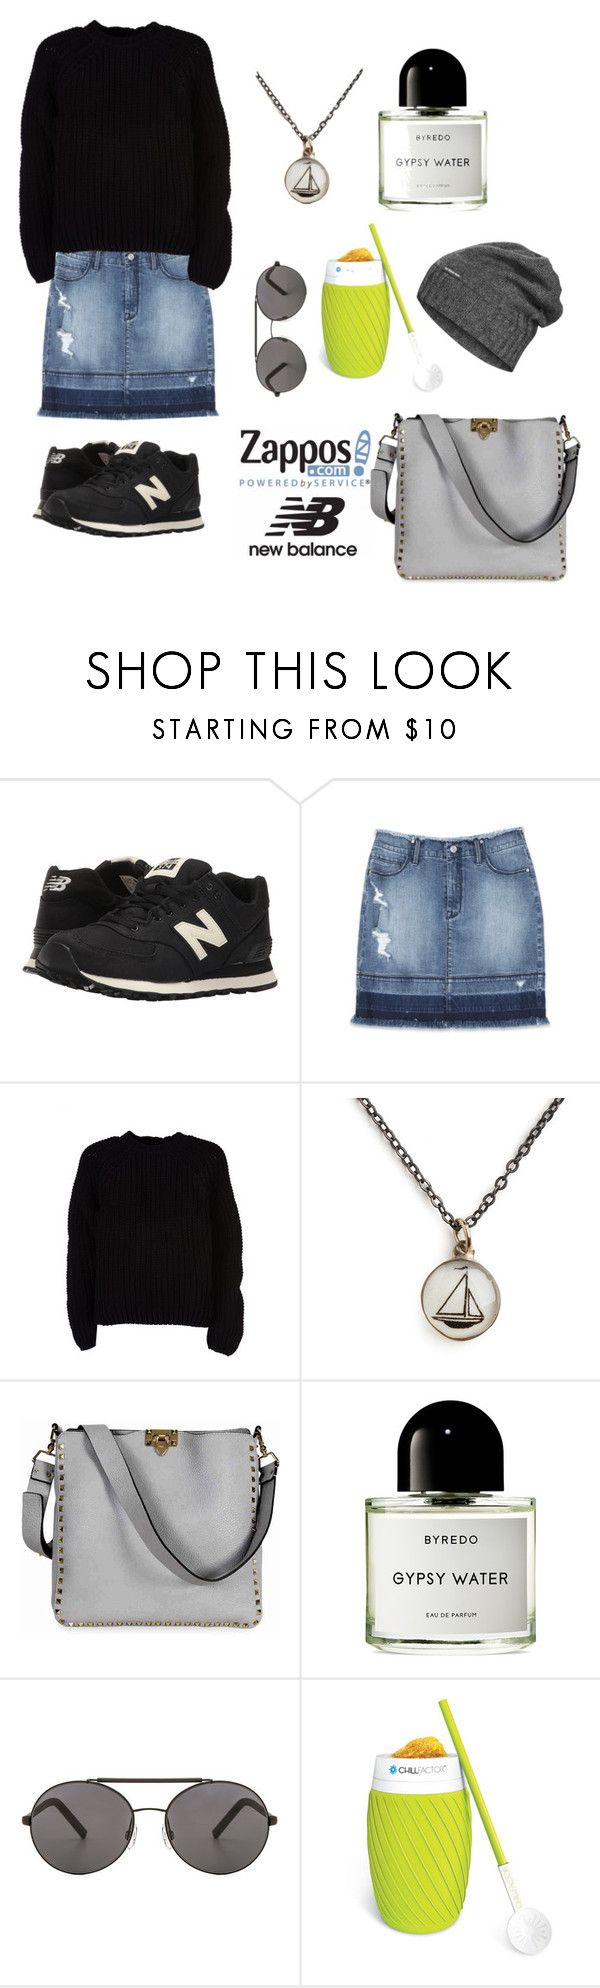 """Run the World in New Balance"" by owen-996 ❤ liked on Polyvore featuring New Balance Classics, Bebe, Maison Kitsuné, Chart Metal Works, Valentino, Byredo, Seafolly, The North Face and NewBalance"